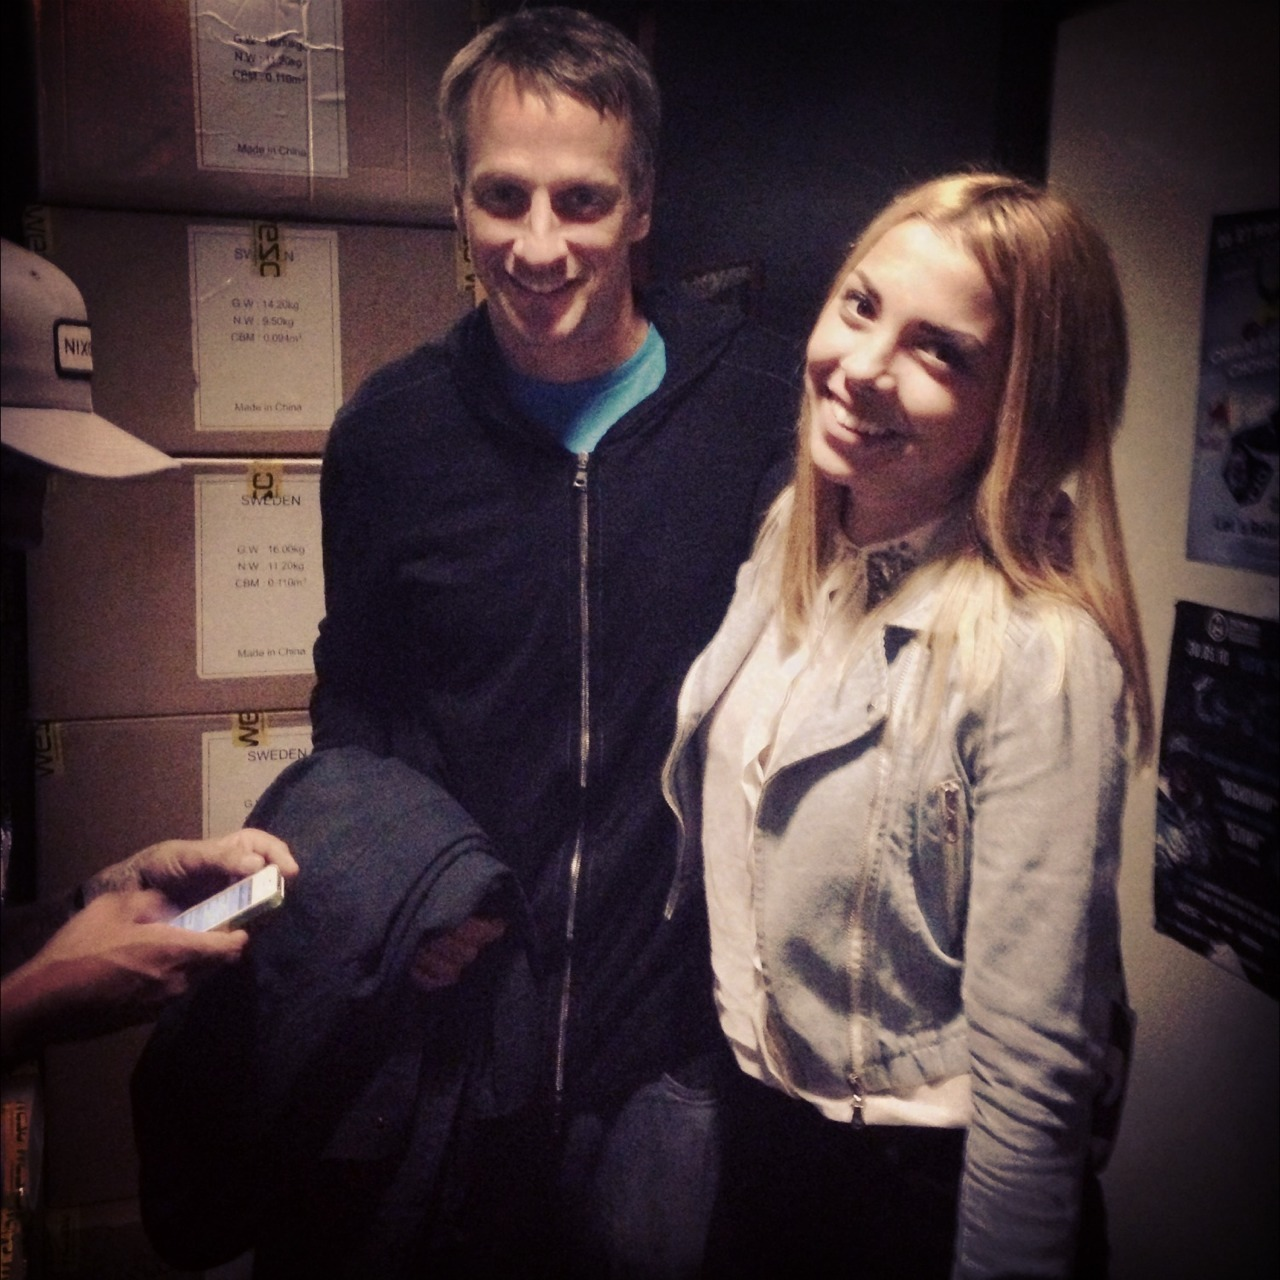 UNPREDICTABLE MEETING WIT TONY HAWK!! My friends sk8rs told me that I have to take some weed to roll up a joint for Tony's crew))I did it